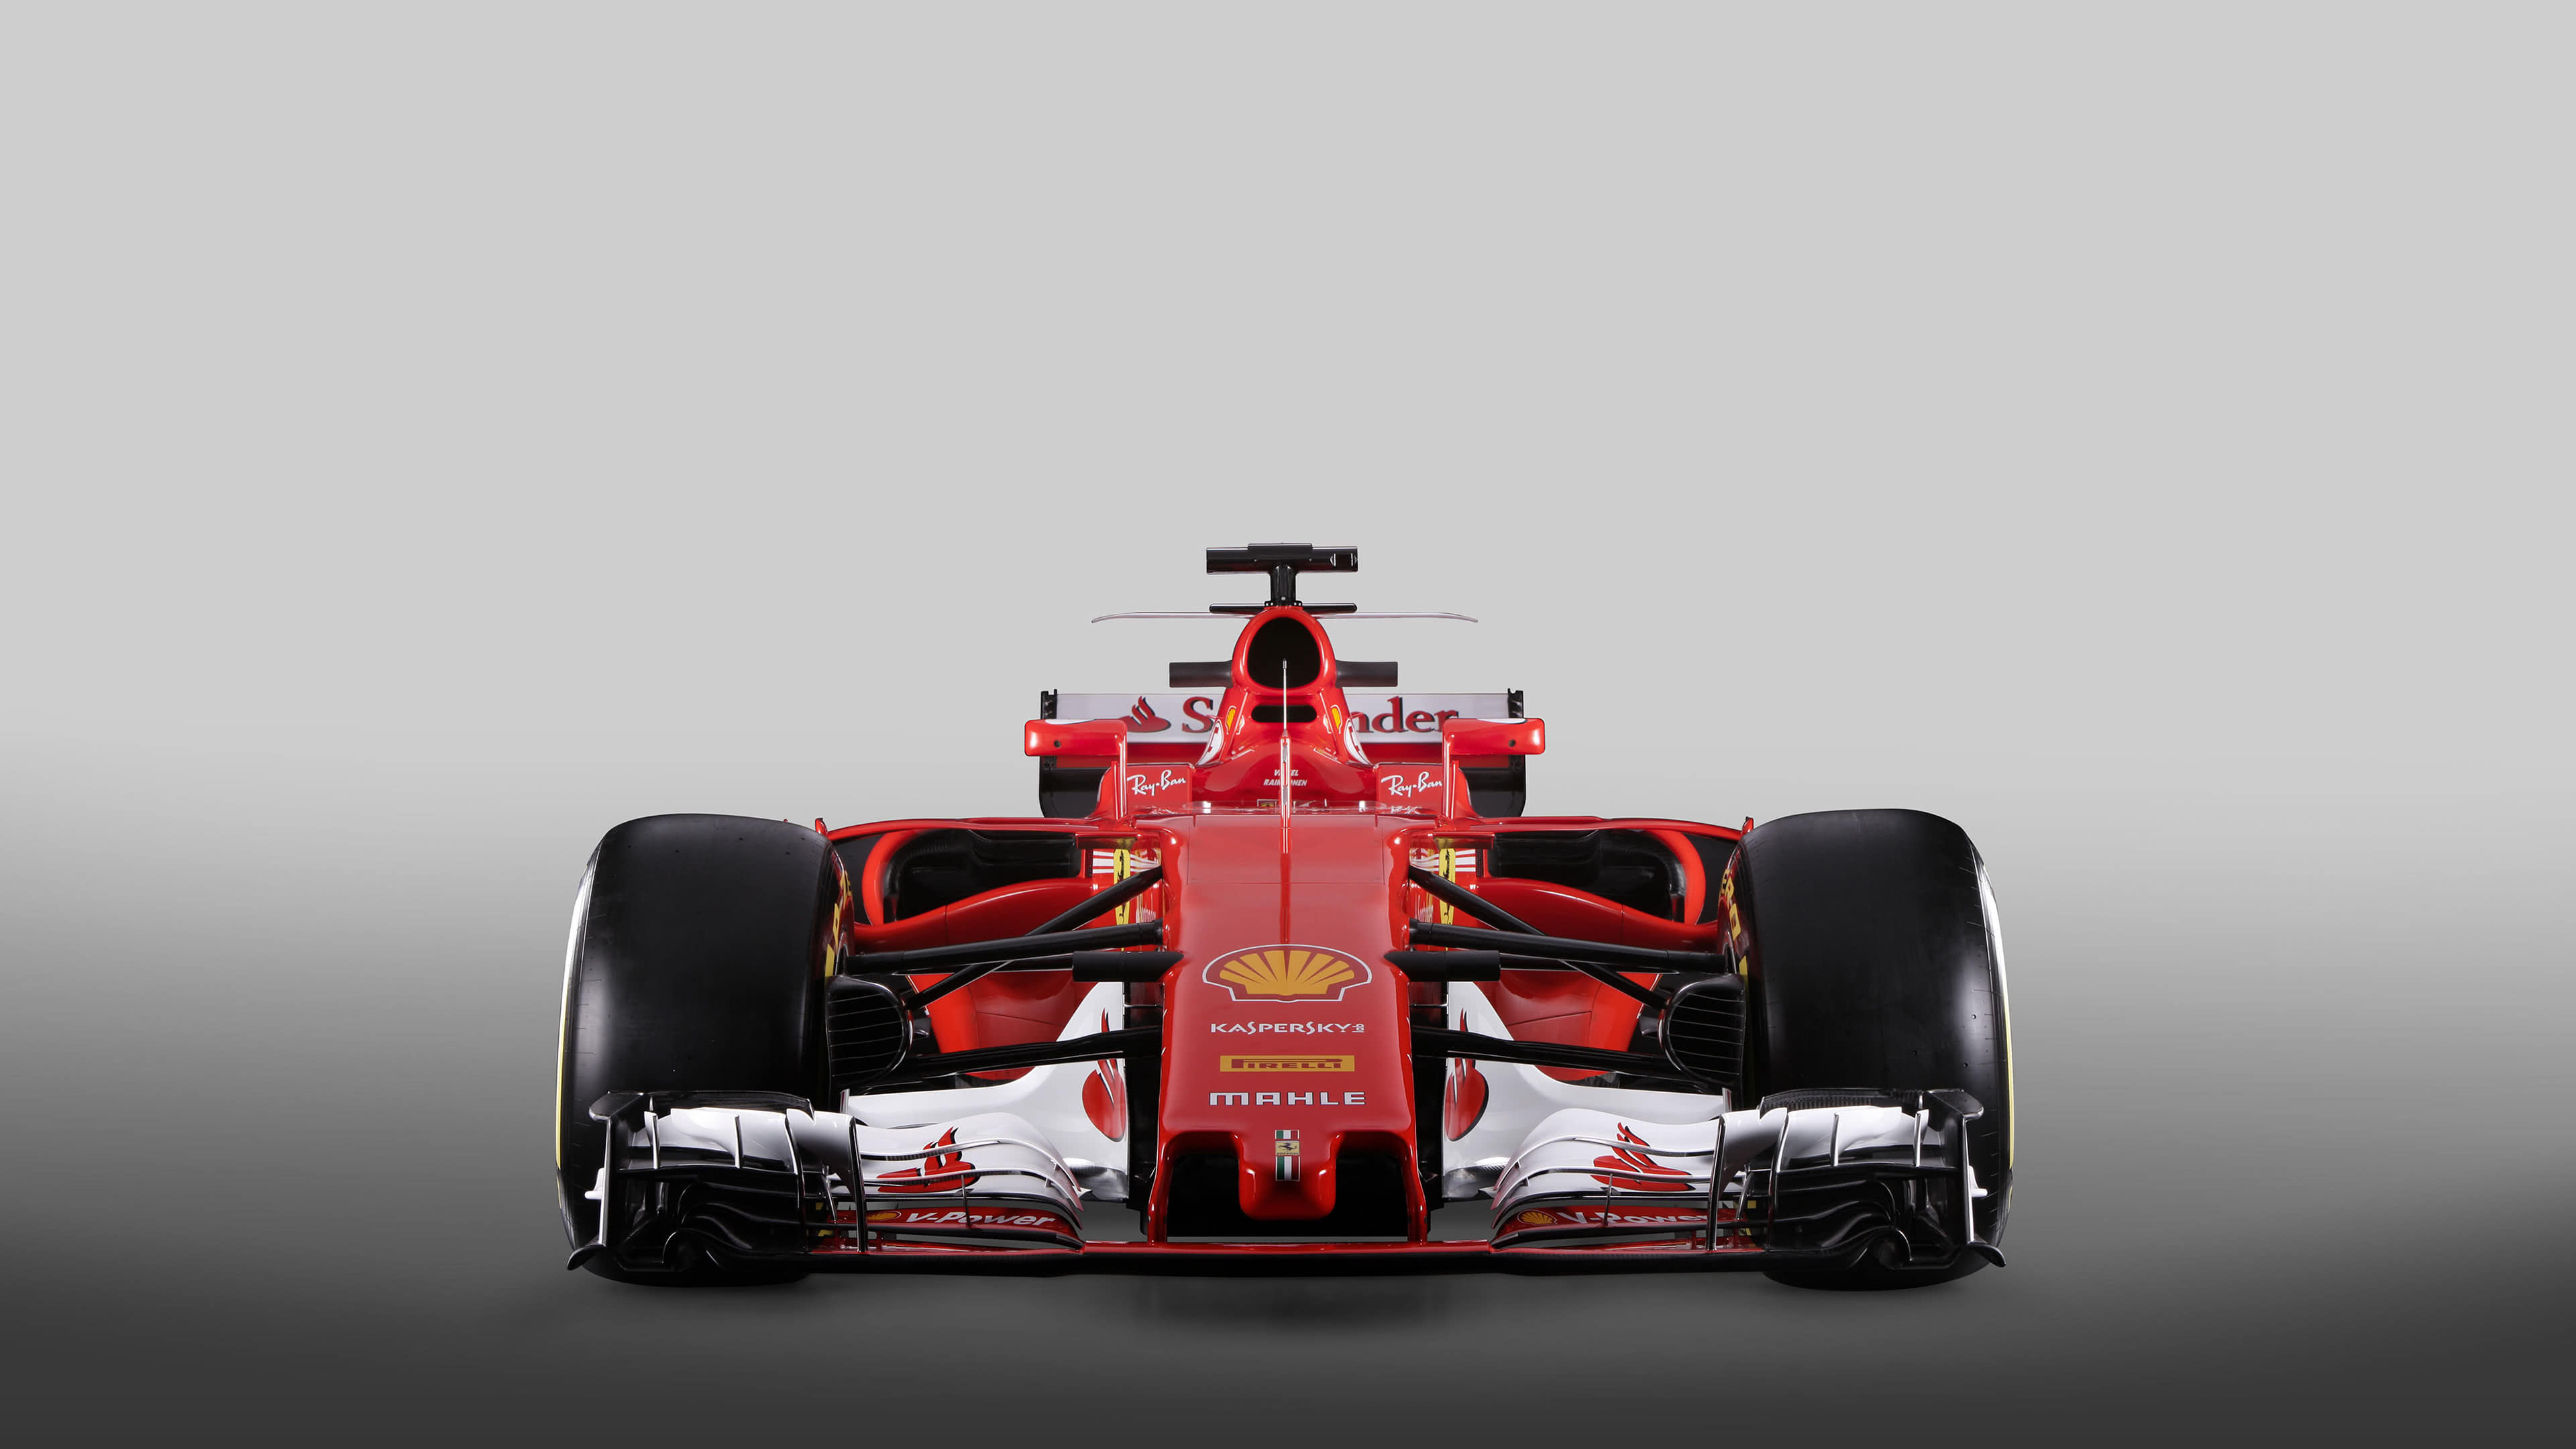 ferrari sf70 h f1 uhd 4k wallpaper